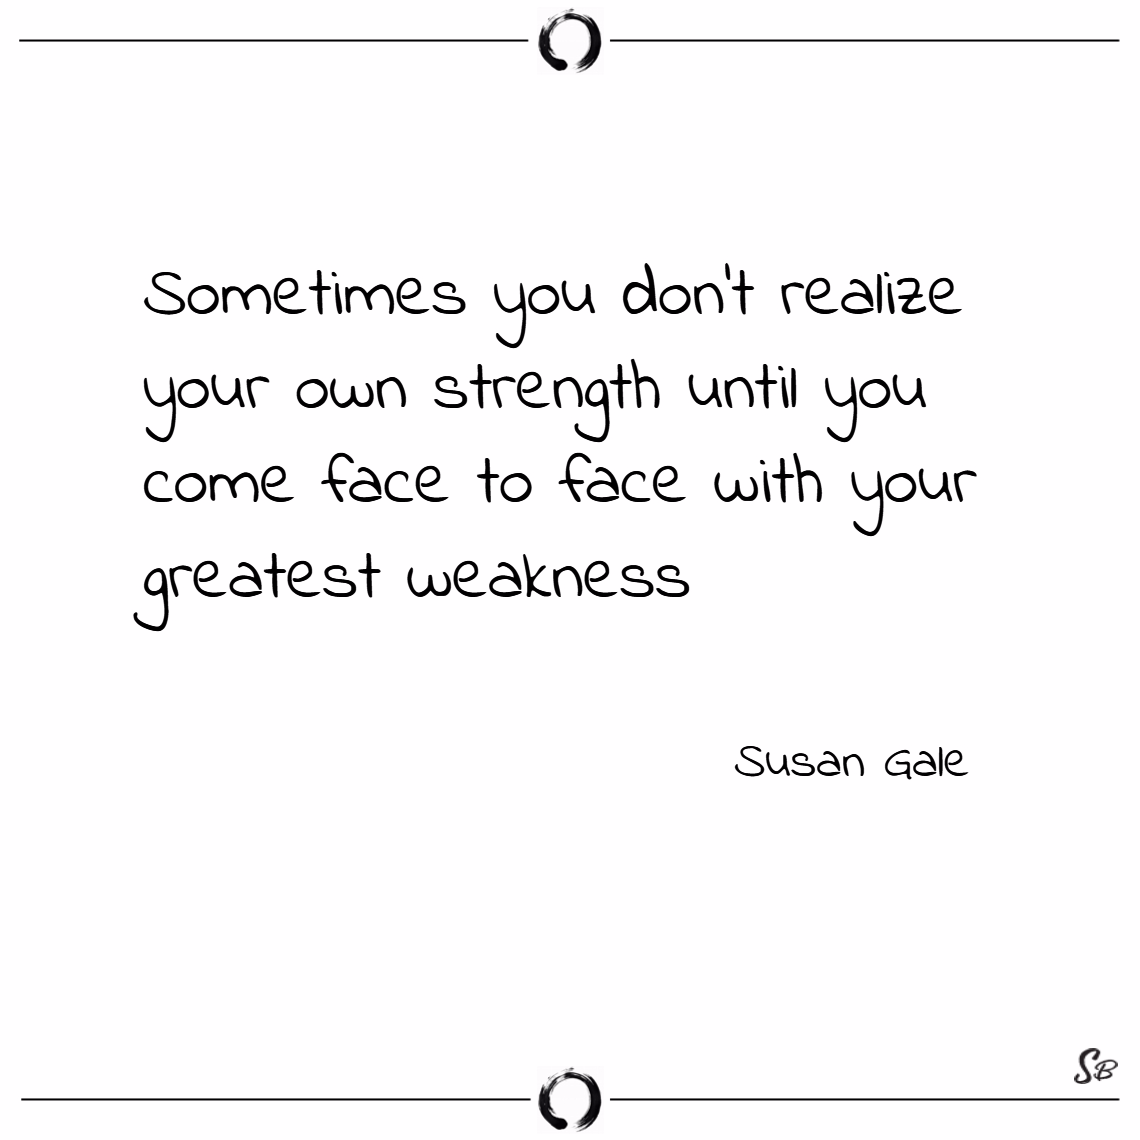 Sometimes you don't realize your own strength until you come face to face with your greatest weakness. – susan gale